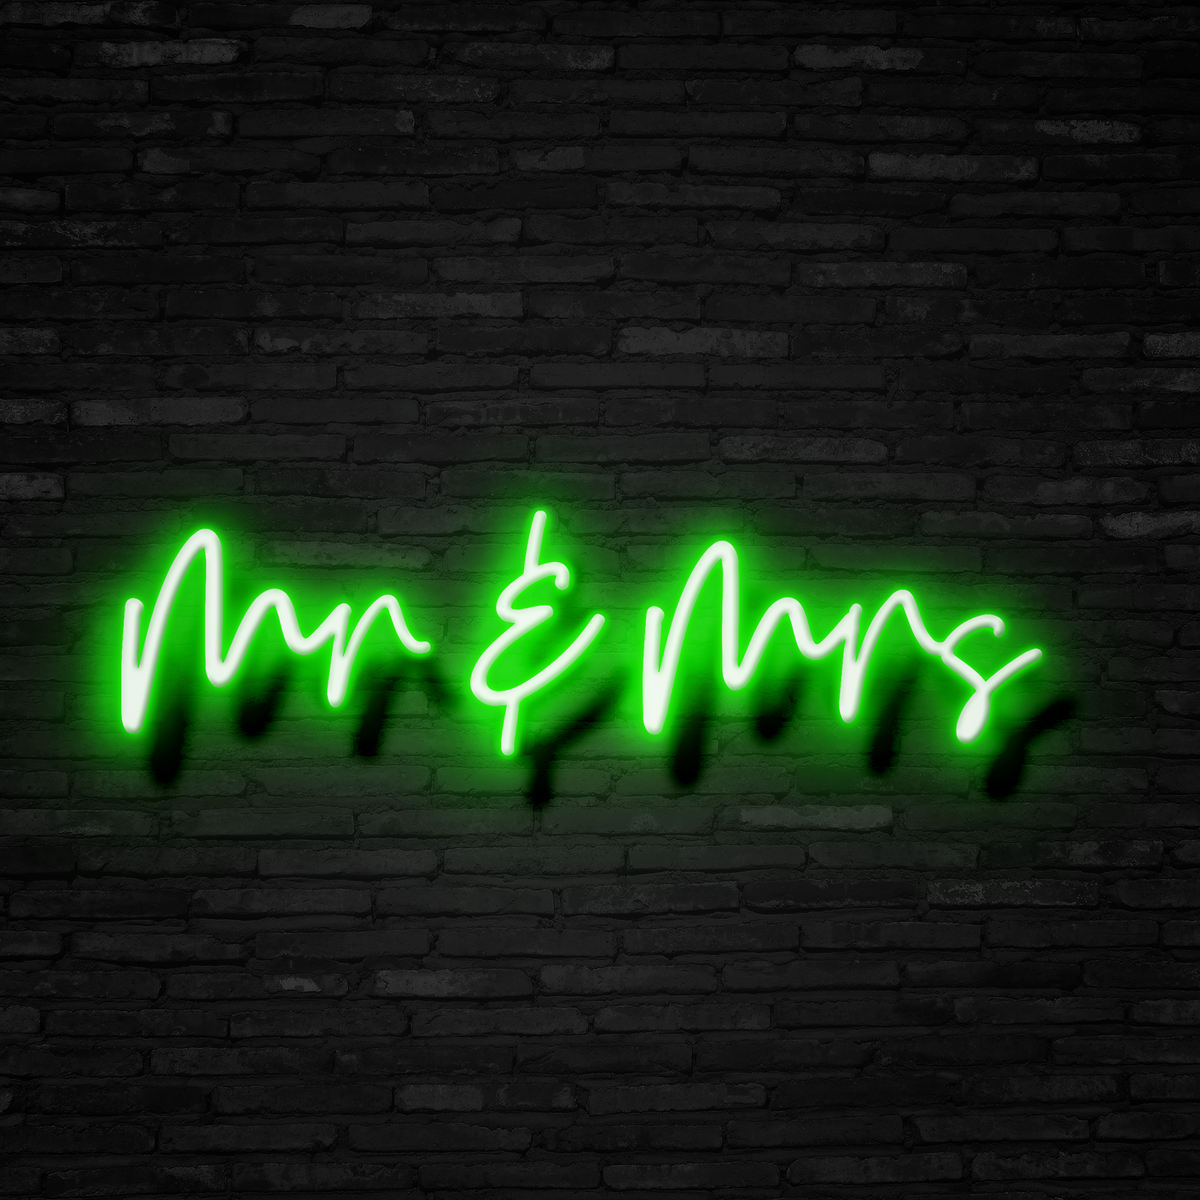 Mr. & Mrs. - Neon Sign